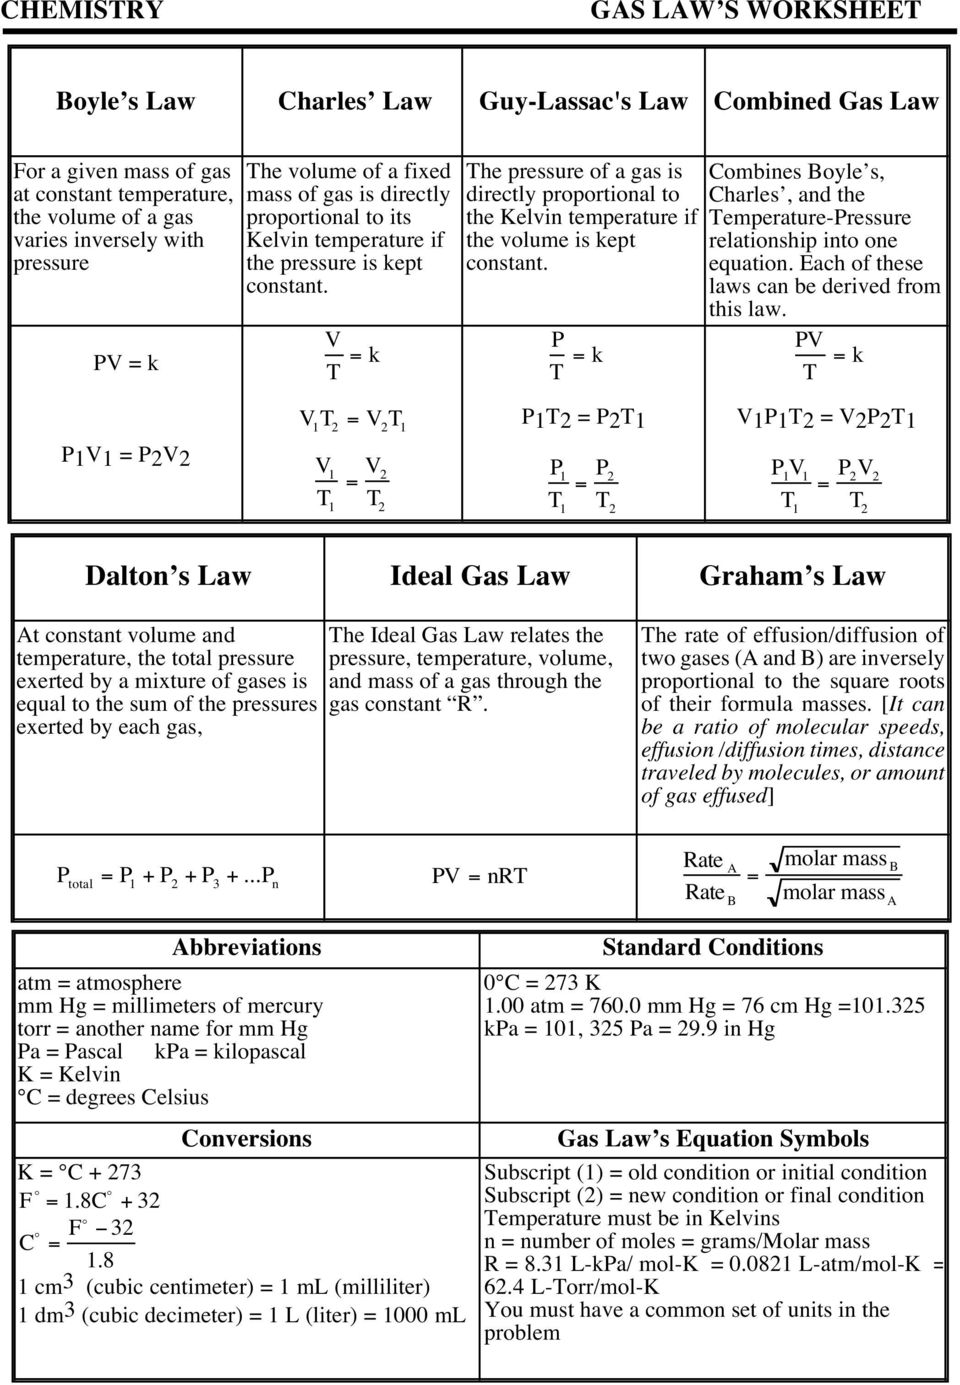 Ideal Gas Law Problems   Key   7  P 315W R 5ng Po éfiz ZL' gU ' m in addition Worksheet   bined Gas Law and Ideal Gas Law together with PV   nRT  The Ideal Gas Law as well  in addition Free Worksheets Liry   Download and Print Worksheets   Free on also Ideal Gas Law Worksheet by Leah's Chemistry Corner   TpT in addition Ideal gas equation by greenAPL   Teaching Resources   Tes together with Gas Stoichiometry Worksheet with solutions ther with Ideal Gas as well gas variables worksheet answers Mind of charles law problems furthermore CHEMISTRY GAS LAW S WORKSHEET   PDF further Ideal Gas Law Worksheet PV   nRT likewise Ideal Gas Law Problems   Key   7  P 315W R 5ng Po éfiz ZL' gU ' m further Ideal Gas Law Worksheet With Answers moreover Ideal Gas Law Worksheet  Chem B Proficiency  6   YouTube as well Ideal Gas Law Worksheet Answers moreover But what about the Ideal Gas Law NewsCut  174389600304 – Ideal Gas. on the ideal gas law worksheet